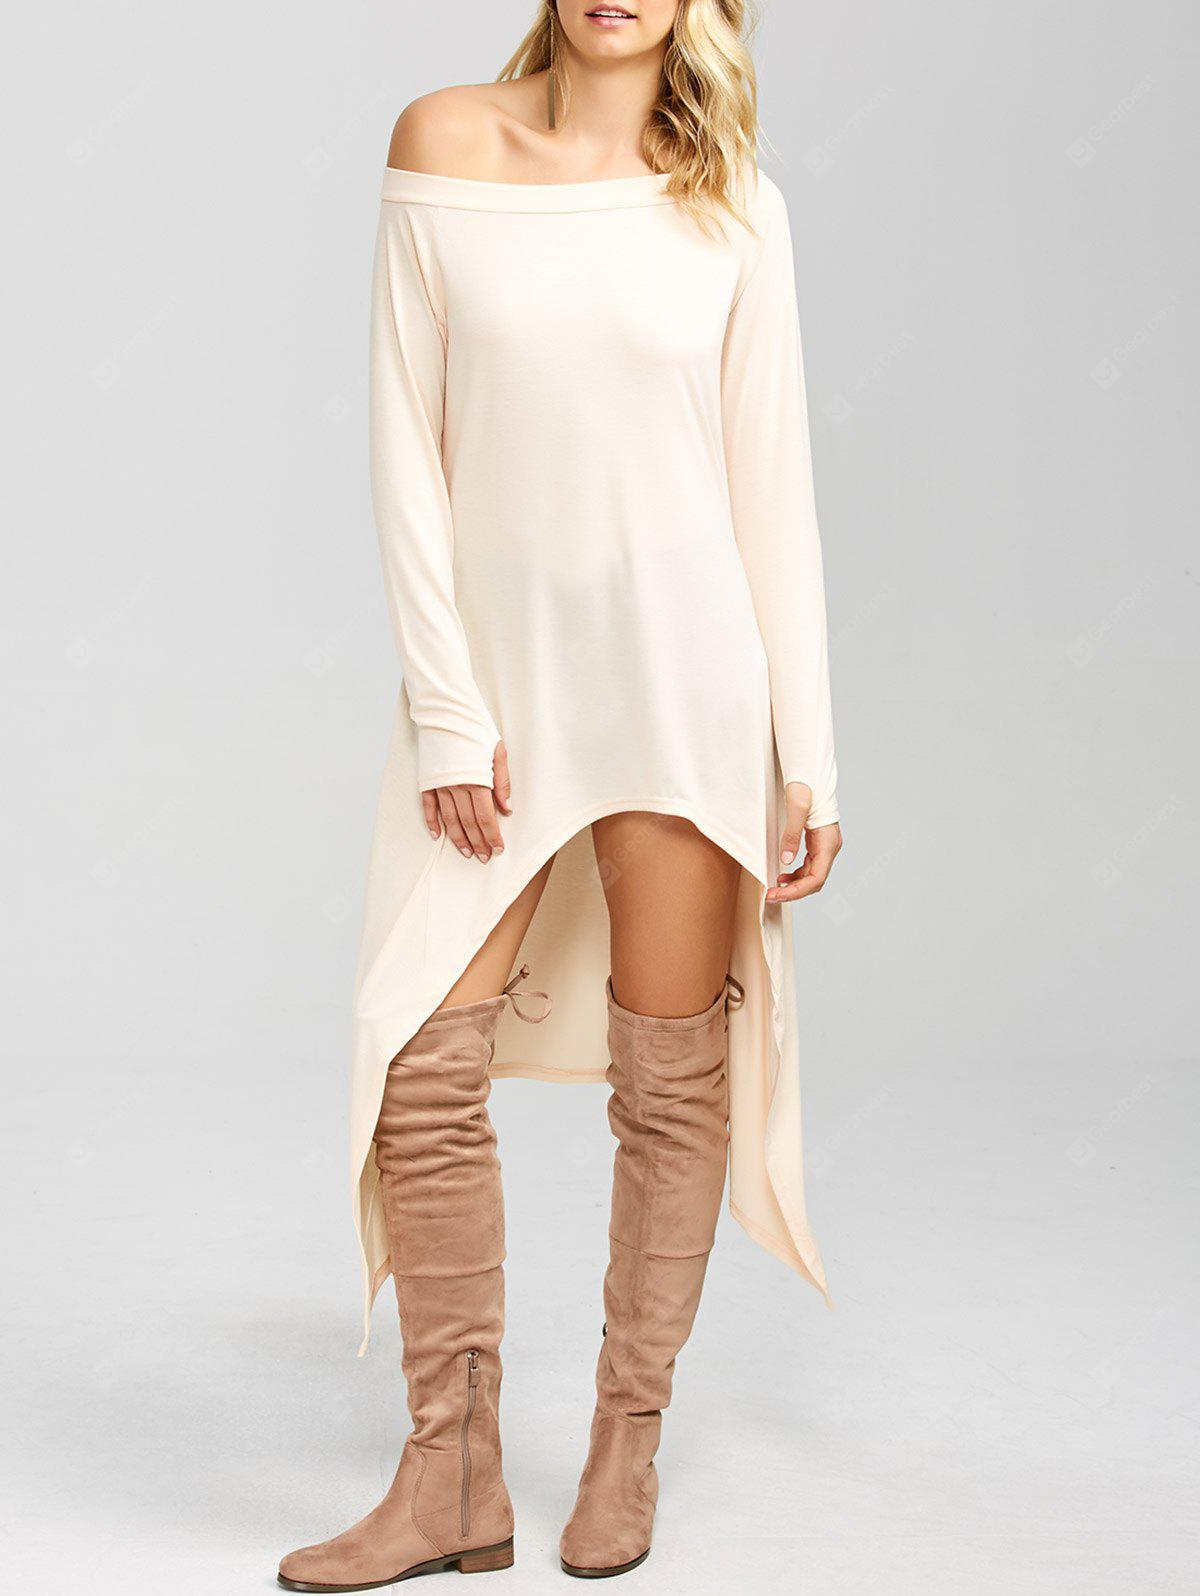 PINKBEIGE High Low Convertible Off The Shoulder Dress